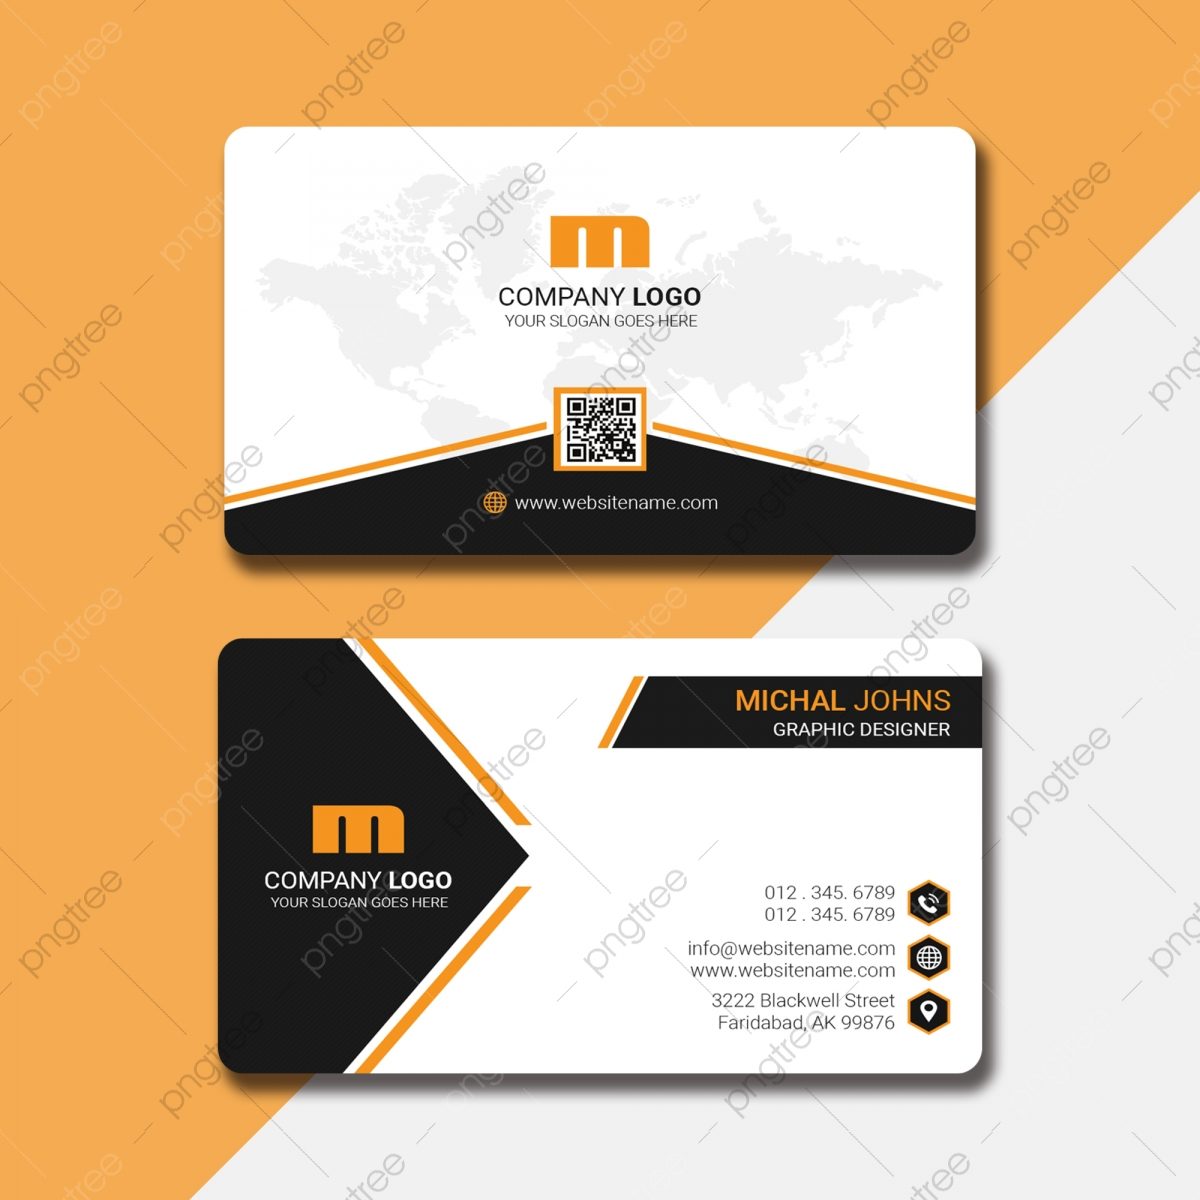 Stylish Business Card With Qr Code Template Download on Pngtree For Qr Code Business Card Template